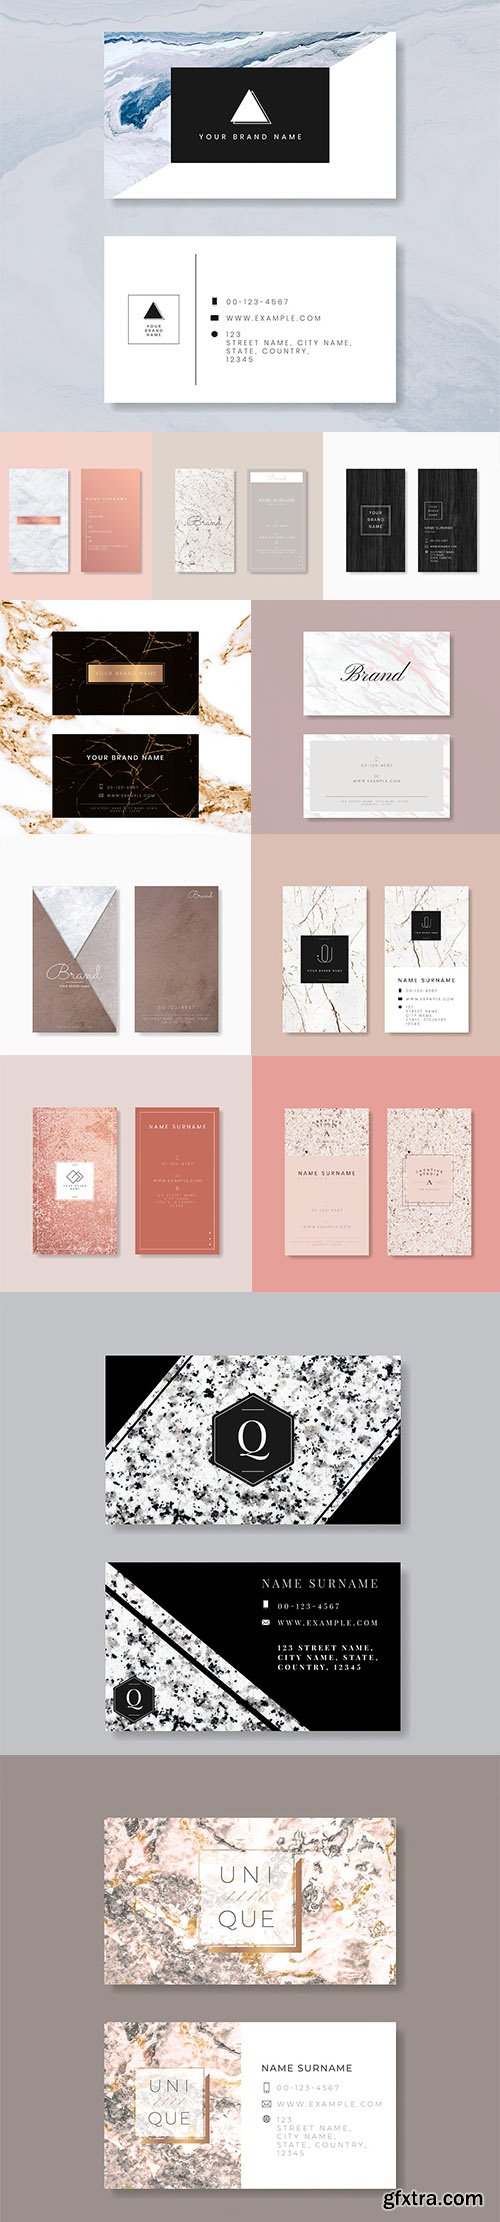 Set of Professional Business Card Templates vol2